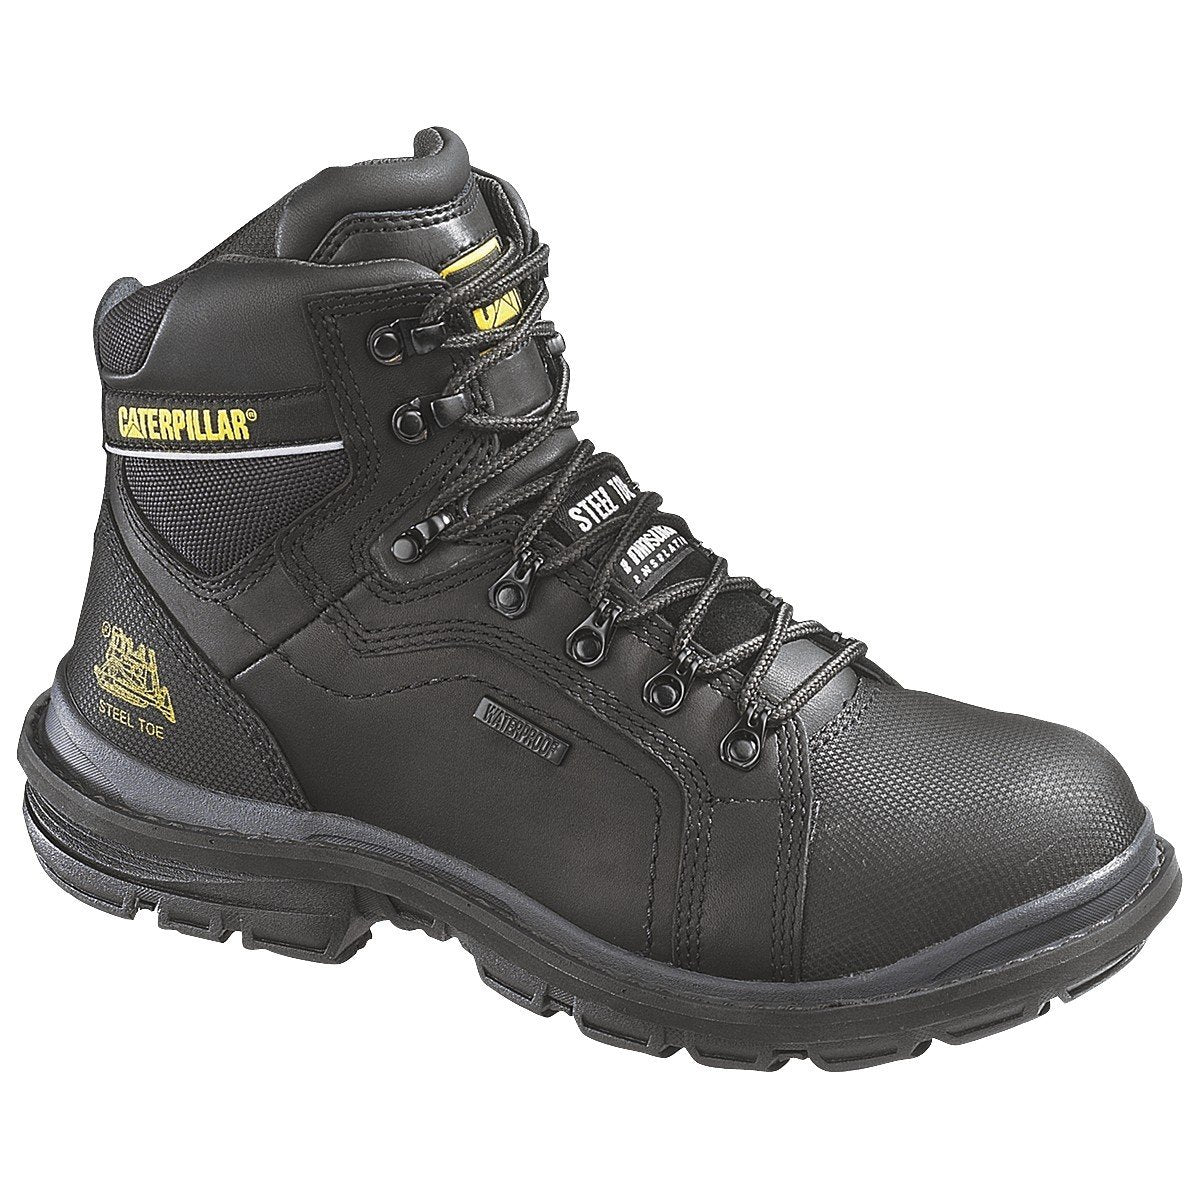 "Flexion Manifold 6"" Waterproof Steel Toe Tough Work Boot"